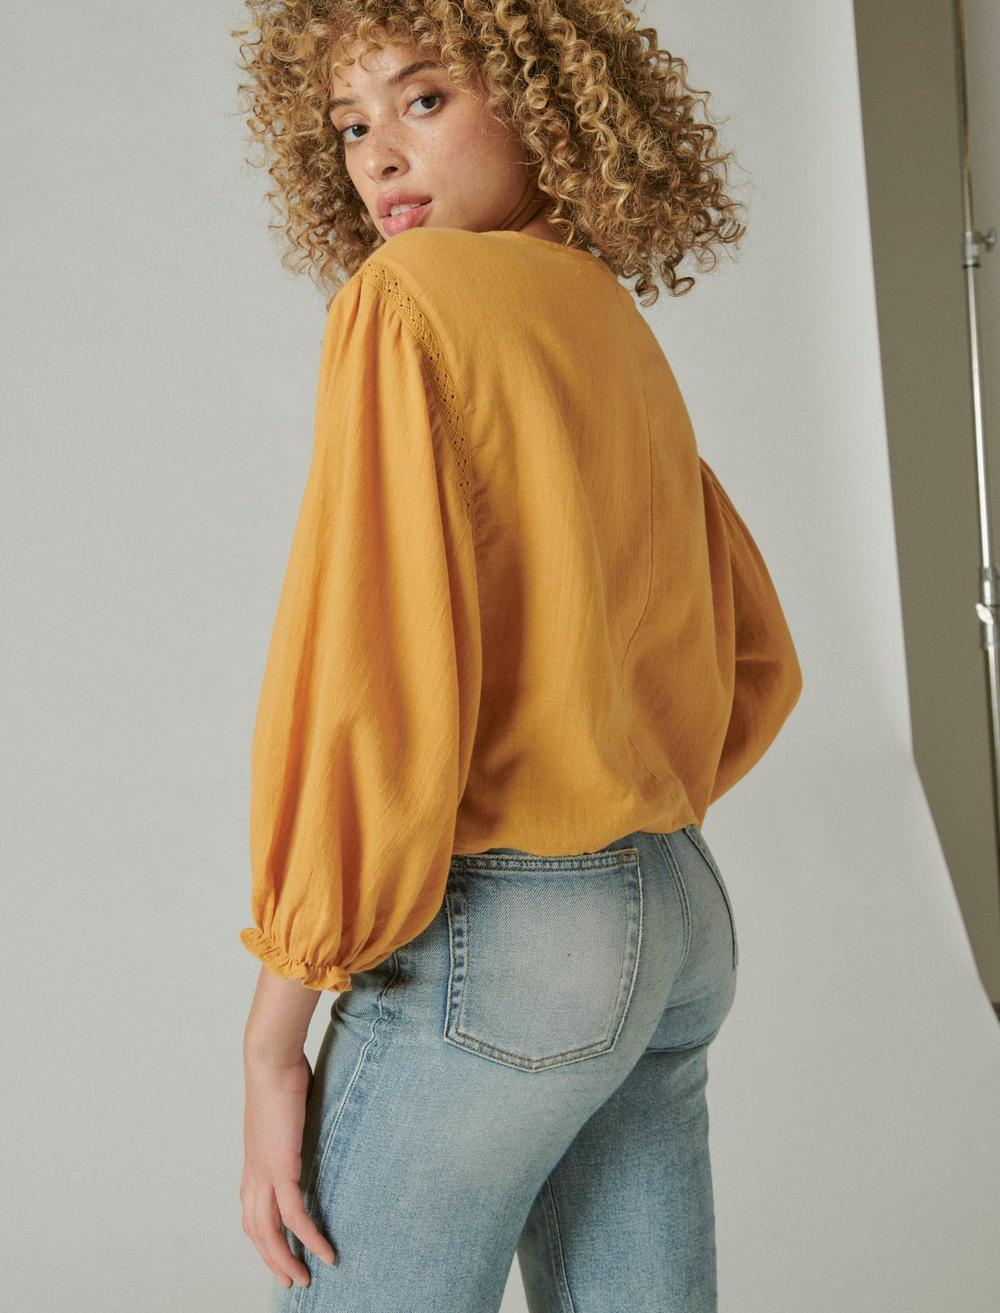 EMBROIDERED ROUND NECK BOXY BLOUSE, image 4